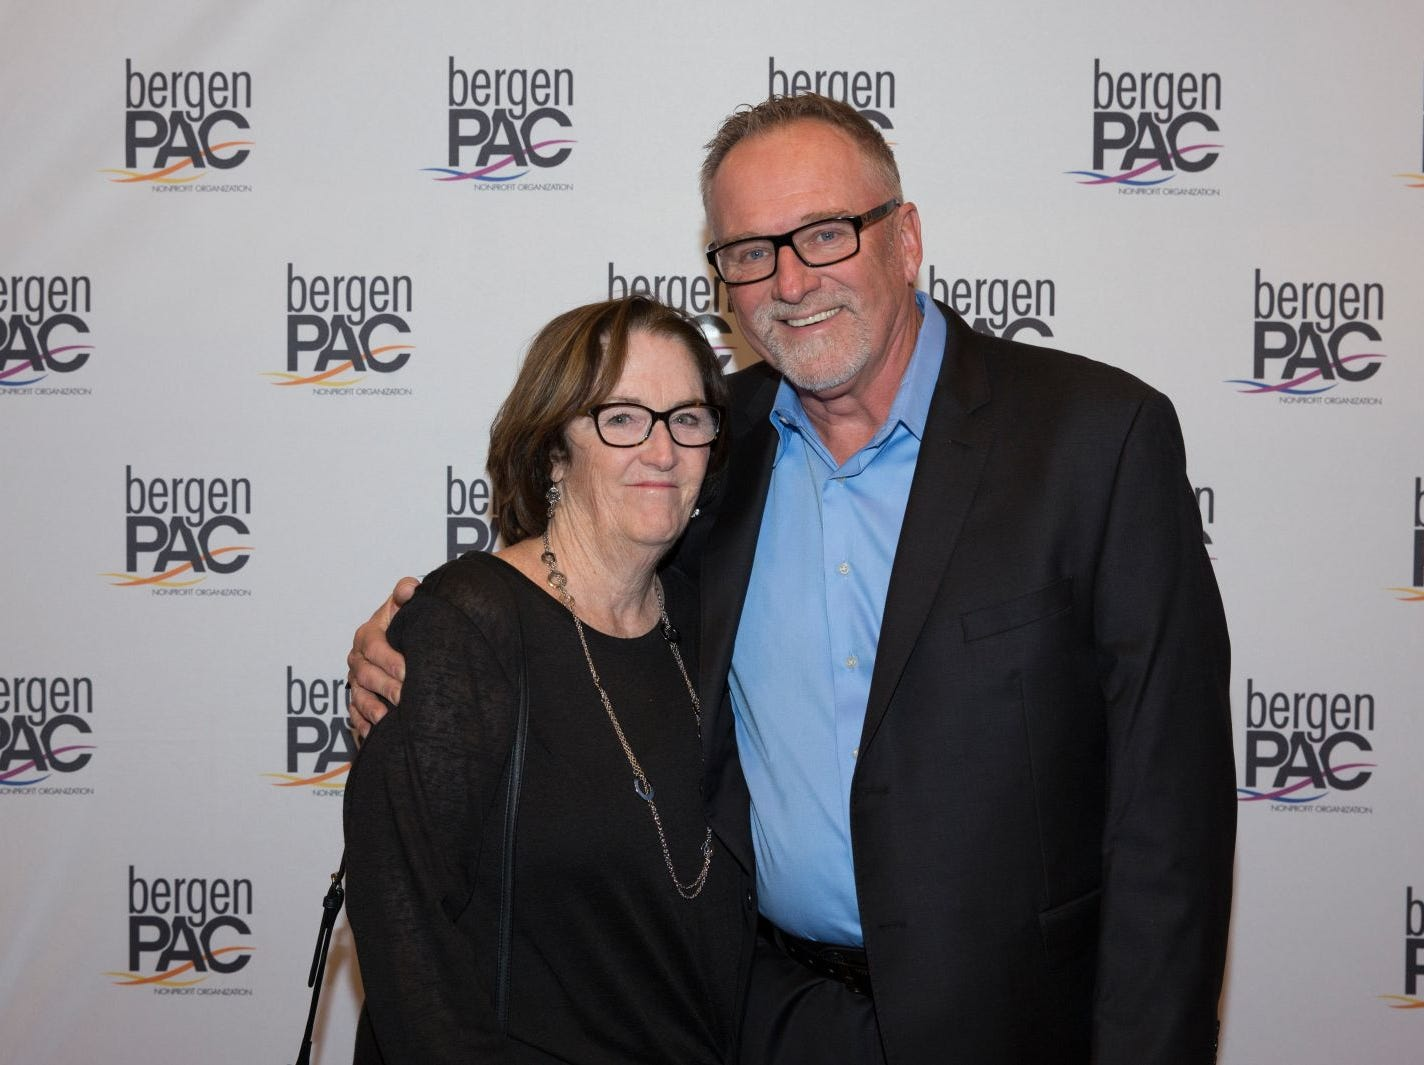 Juie and Gary Burmeister. BergenPAC held its annual fall gala featuring John Fogerty in Englewood. This year's honoree was Fernando Garip, from Wilmington Trust and M&T Bank. 11/08/2018